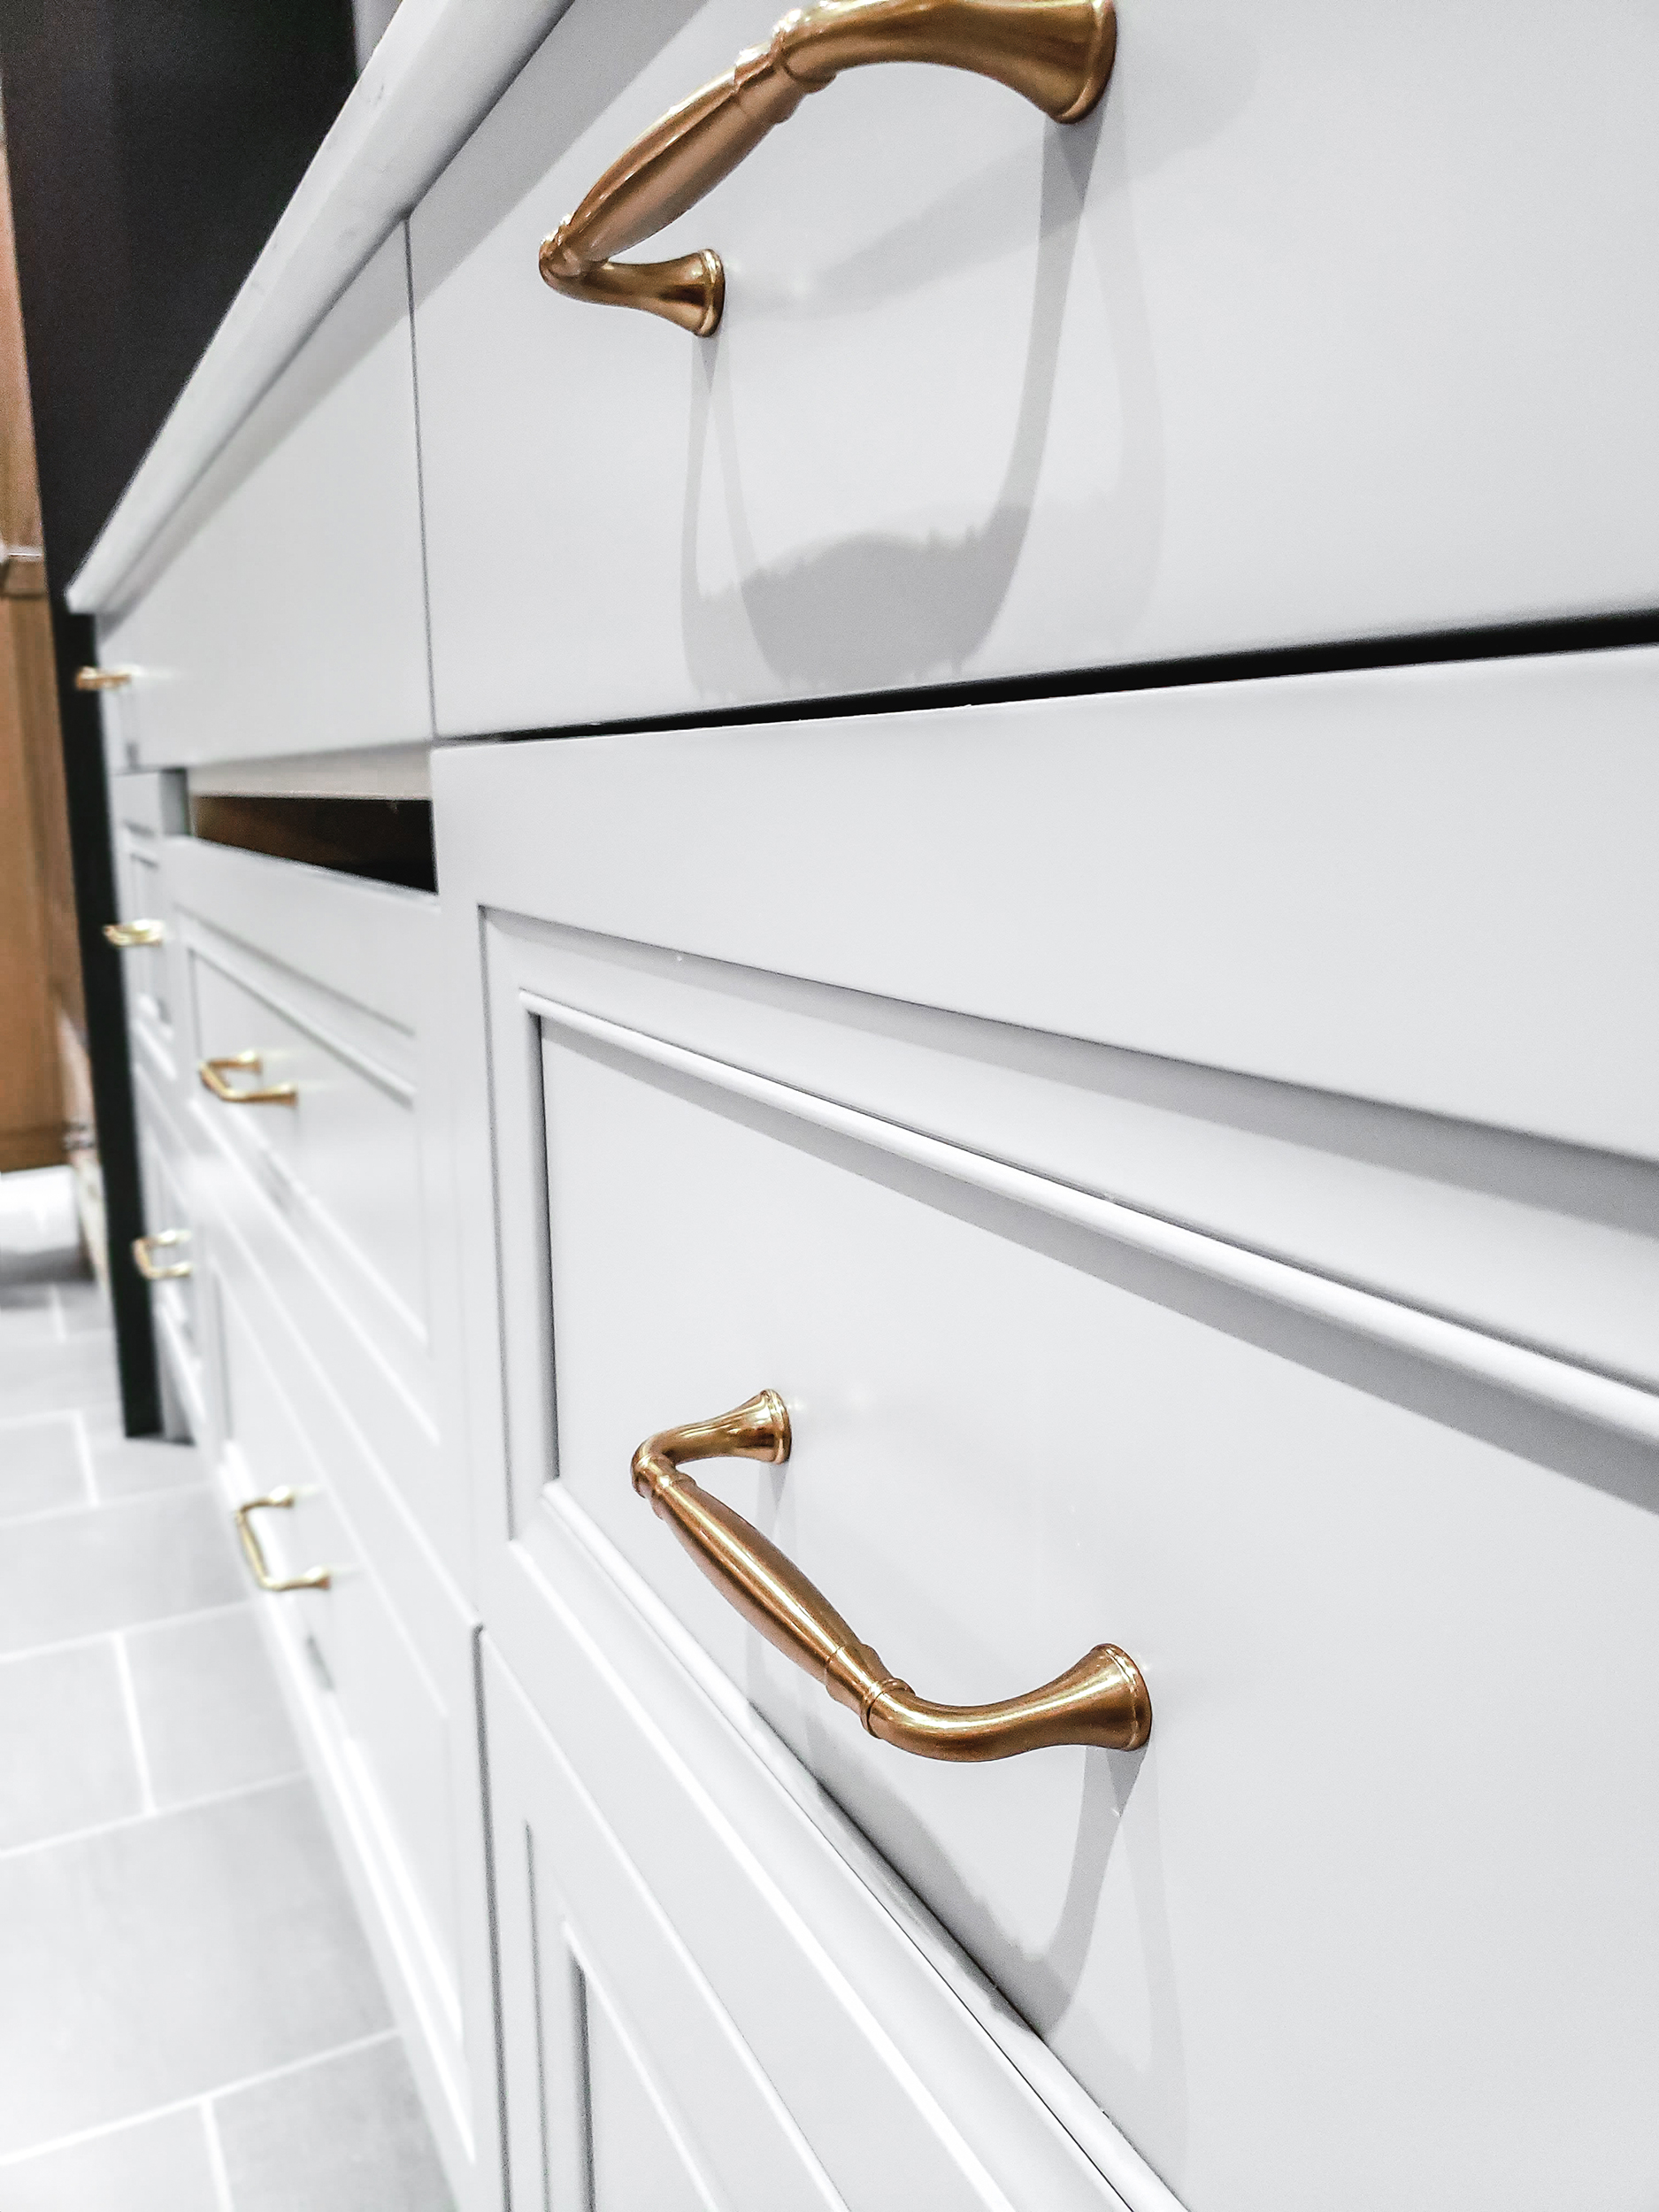 How to Keep Small Appliances Out of Sight in Your Kitchen 1